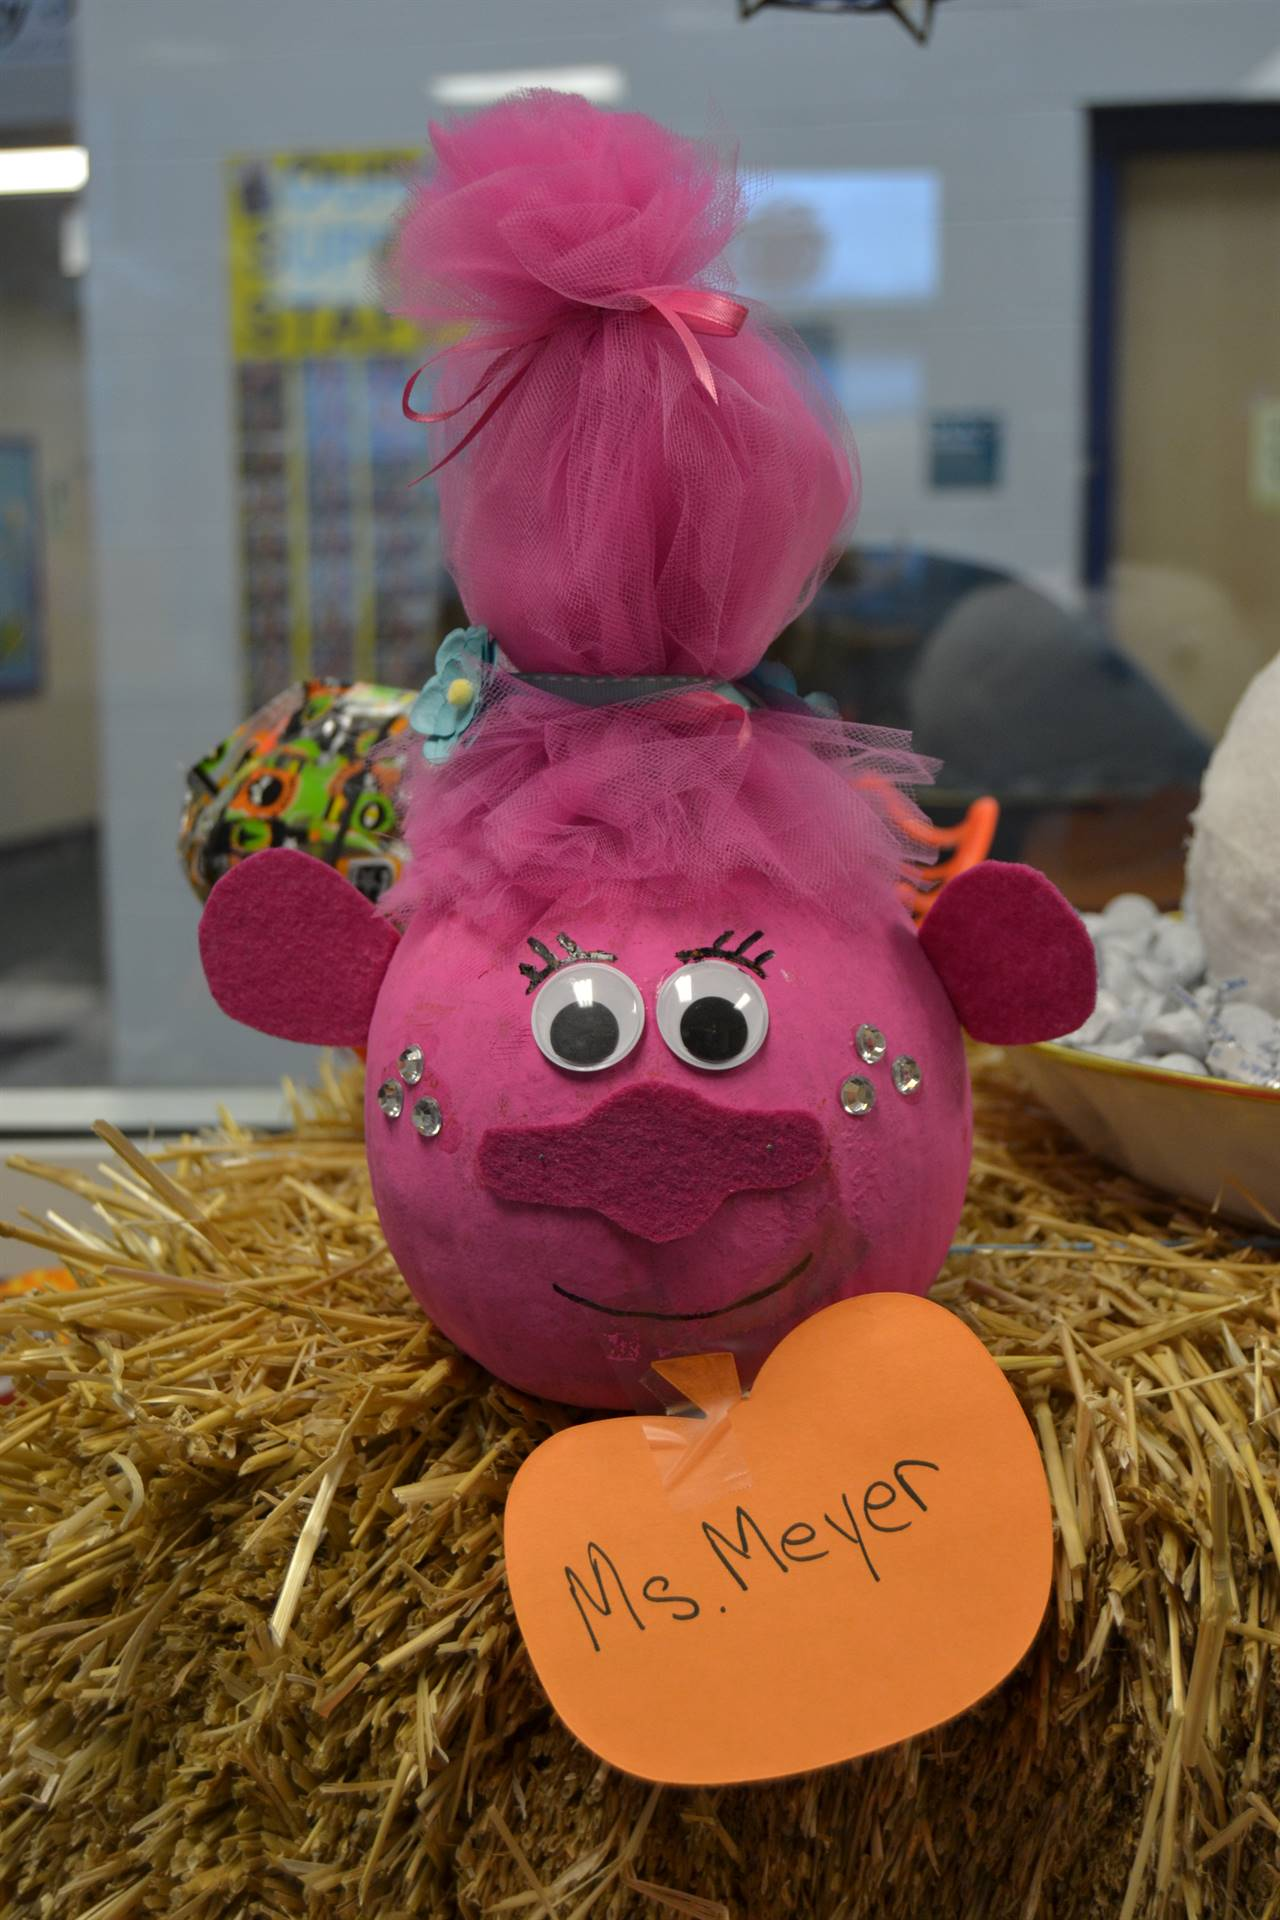 Pumpkin created by Ms. Meyer